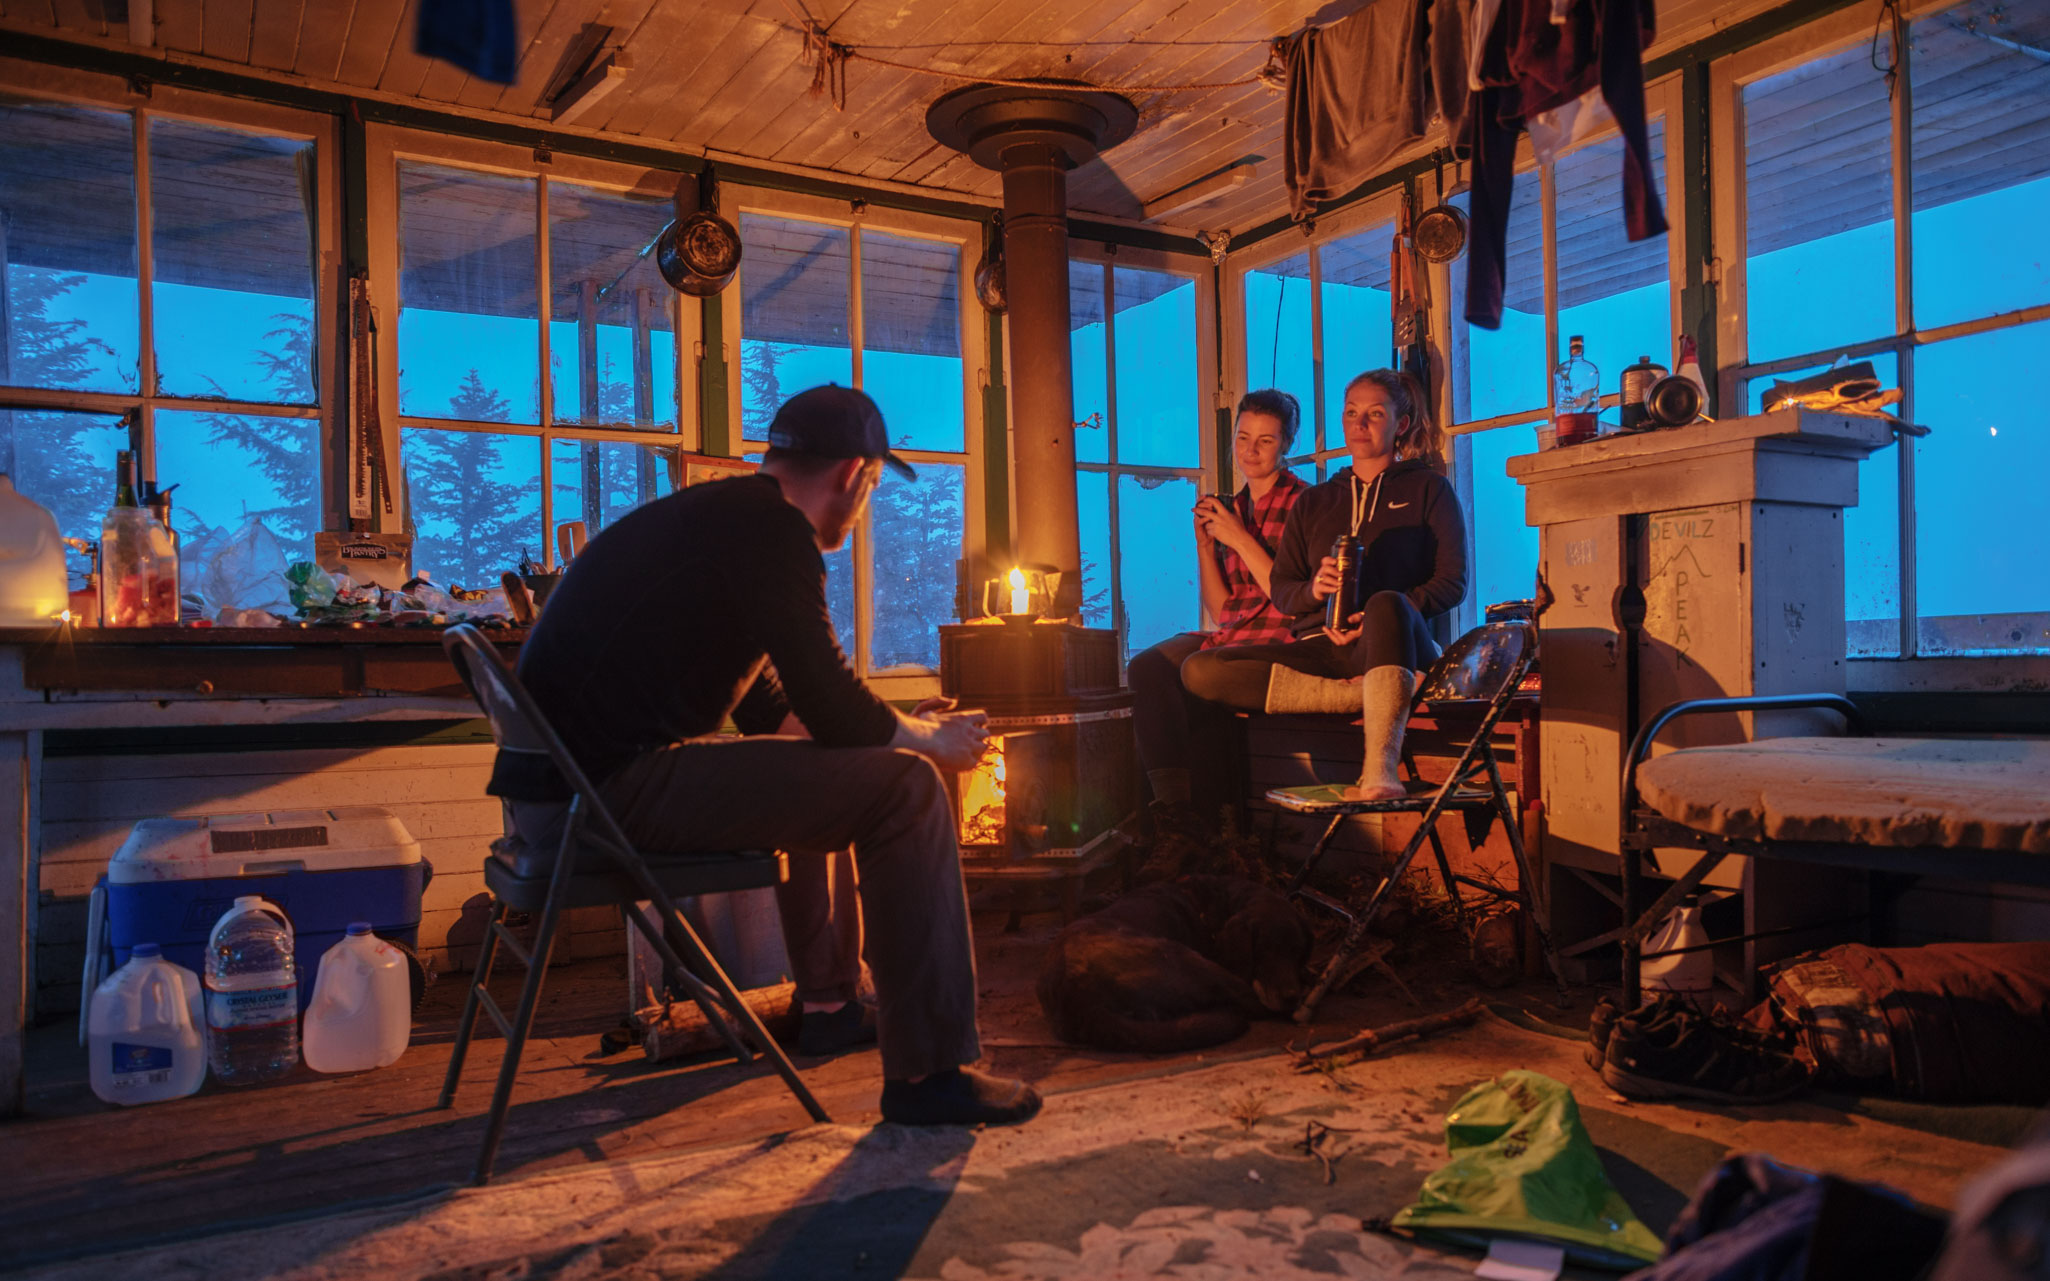 Evening in fire lookout